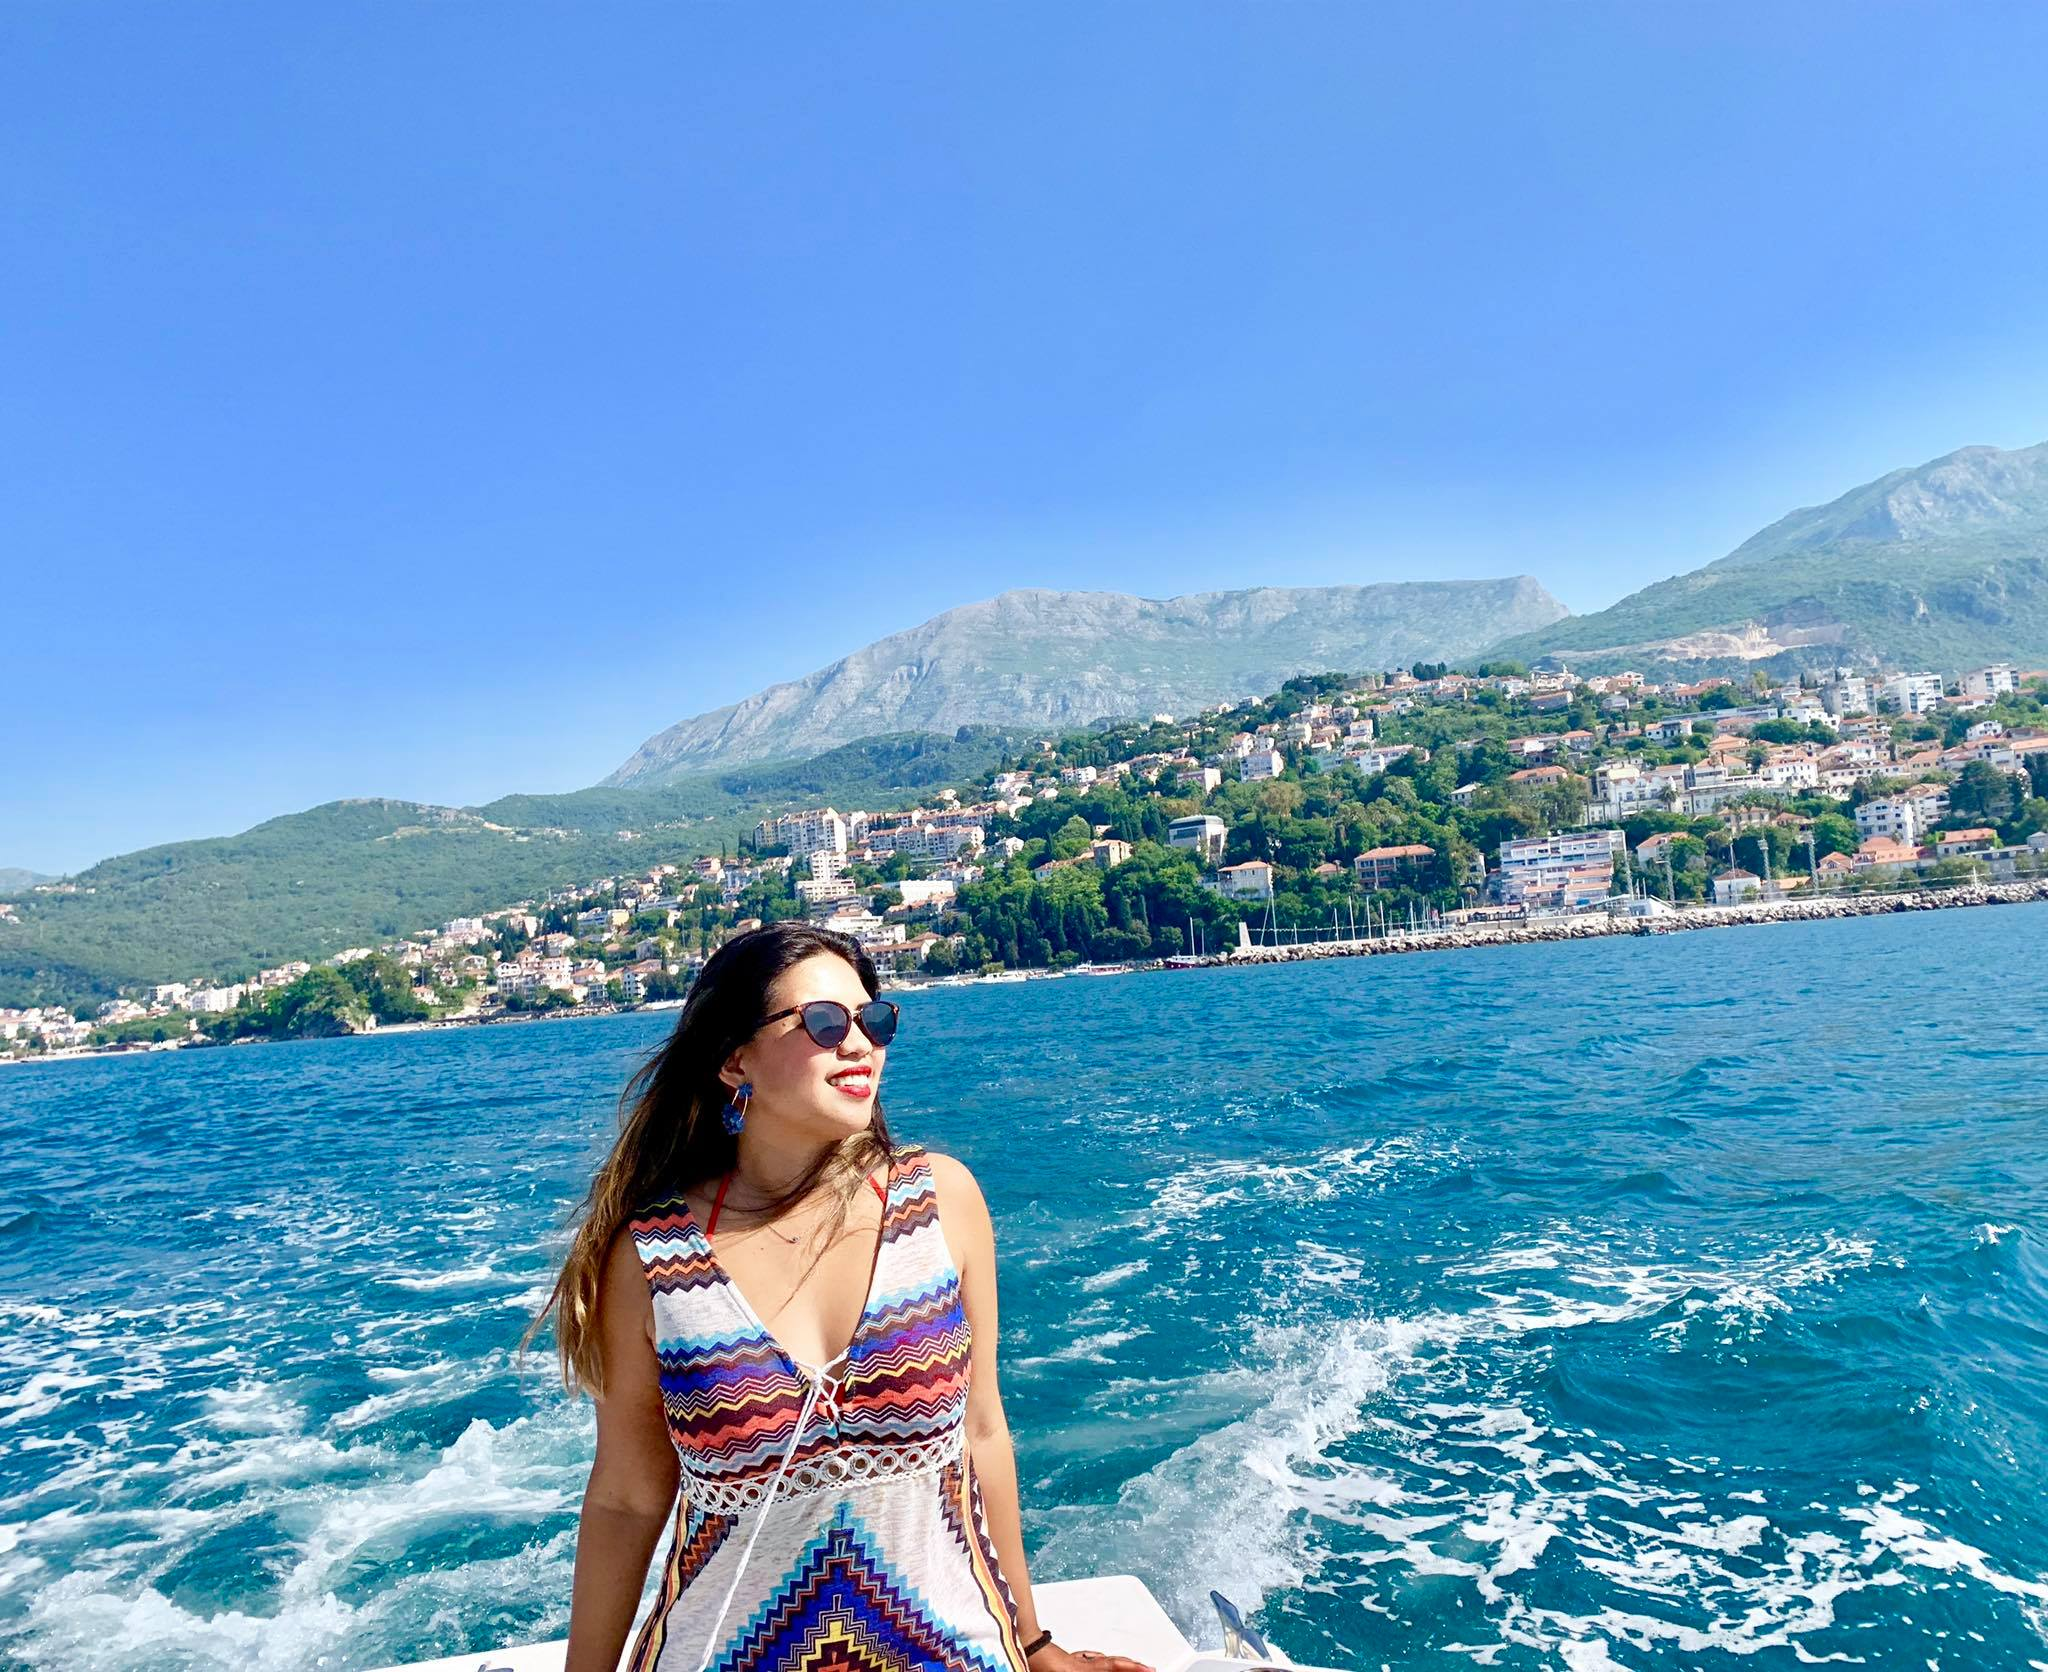 Expat Life in Montenegro Day 8 Fishing Trip to the Adriatic Sea16.jpg